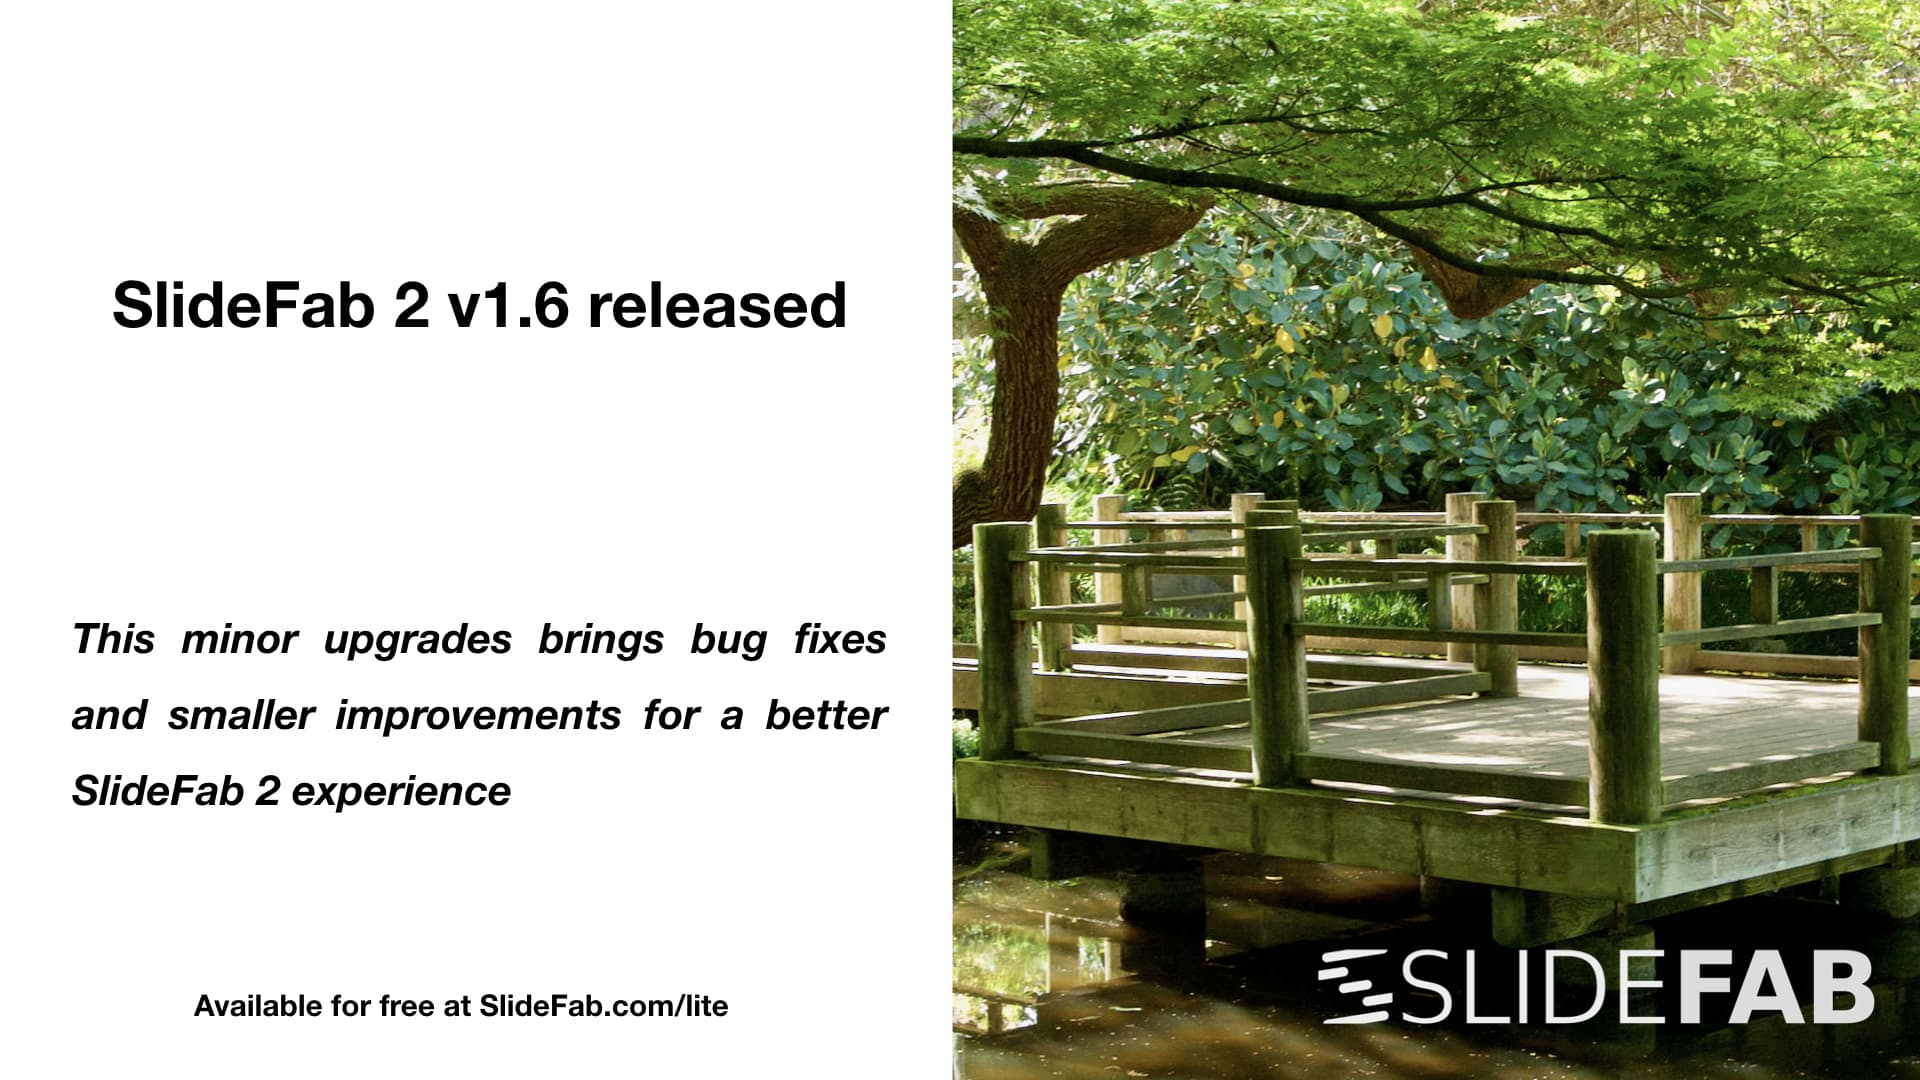 SlideFab 2 minor update available now